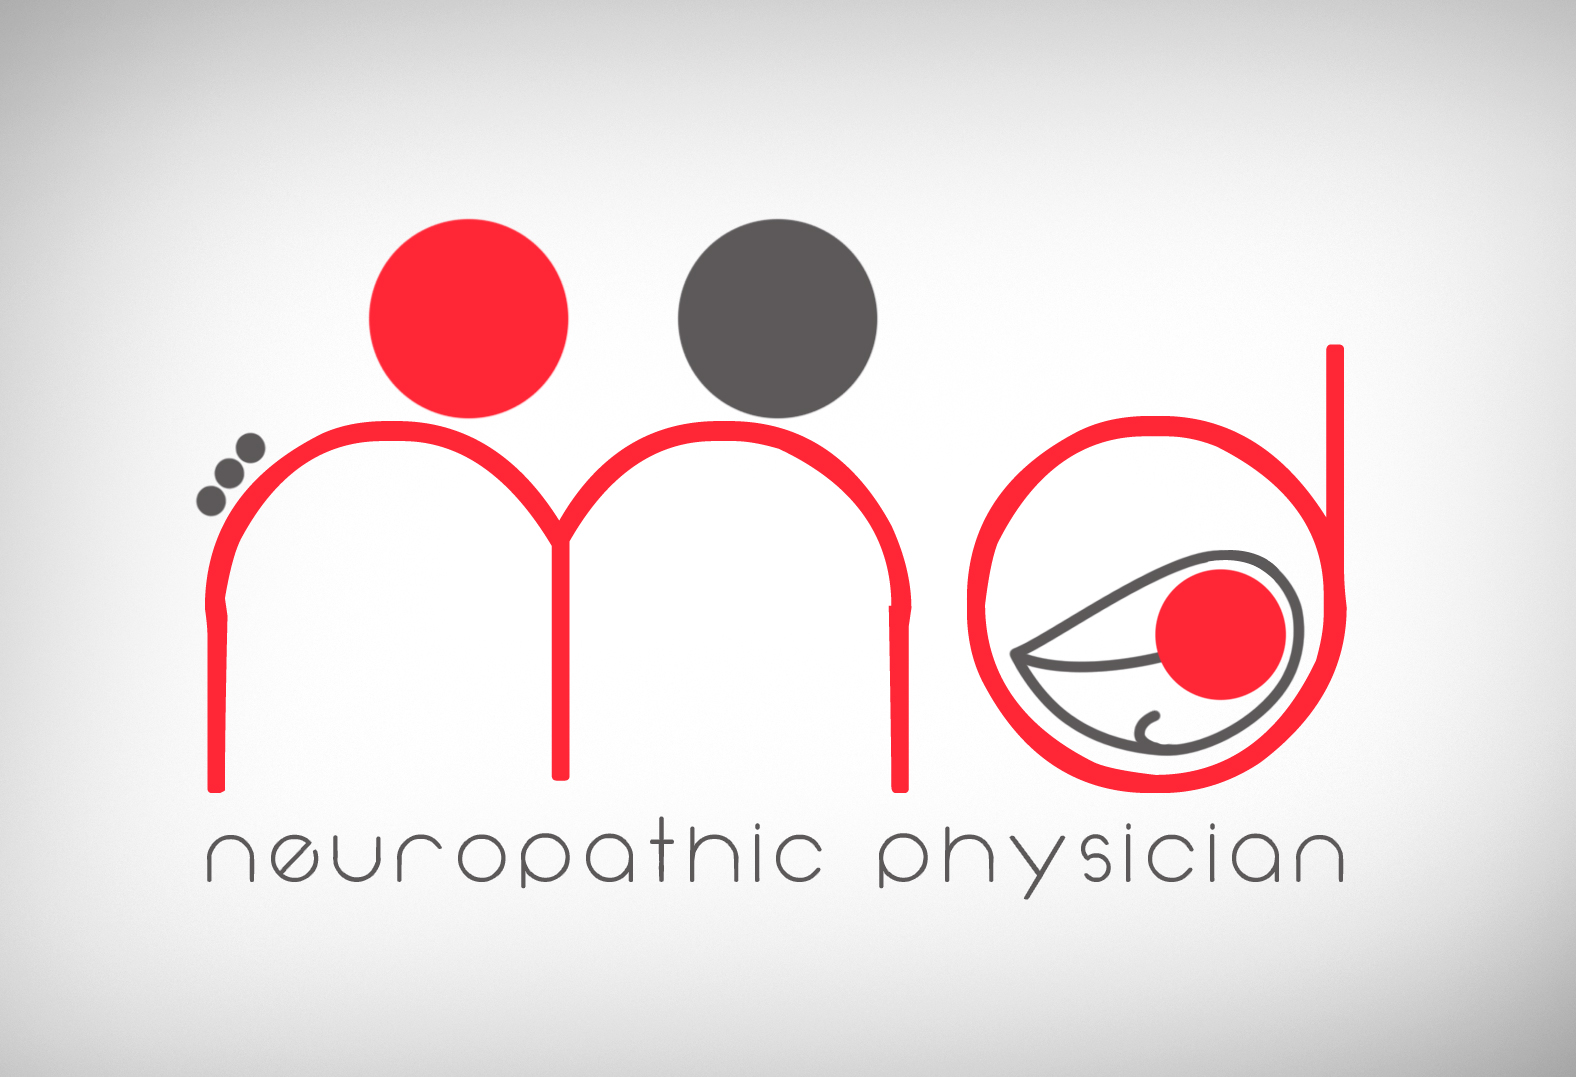 Logo Design by Sandip Kumar - Entry No. 227 in the Logo Design Contest Artistic Logo Design for Dr Mélanie DesChâtelets.